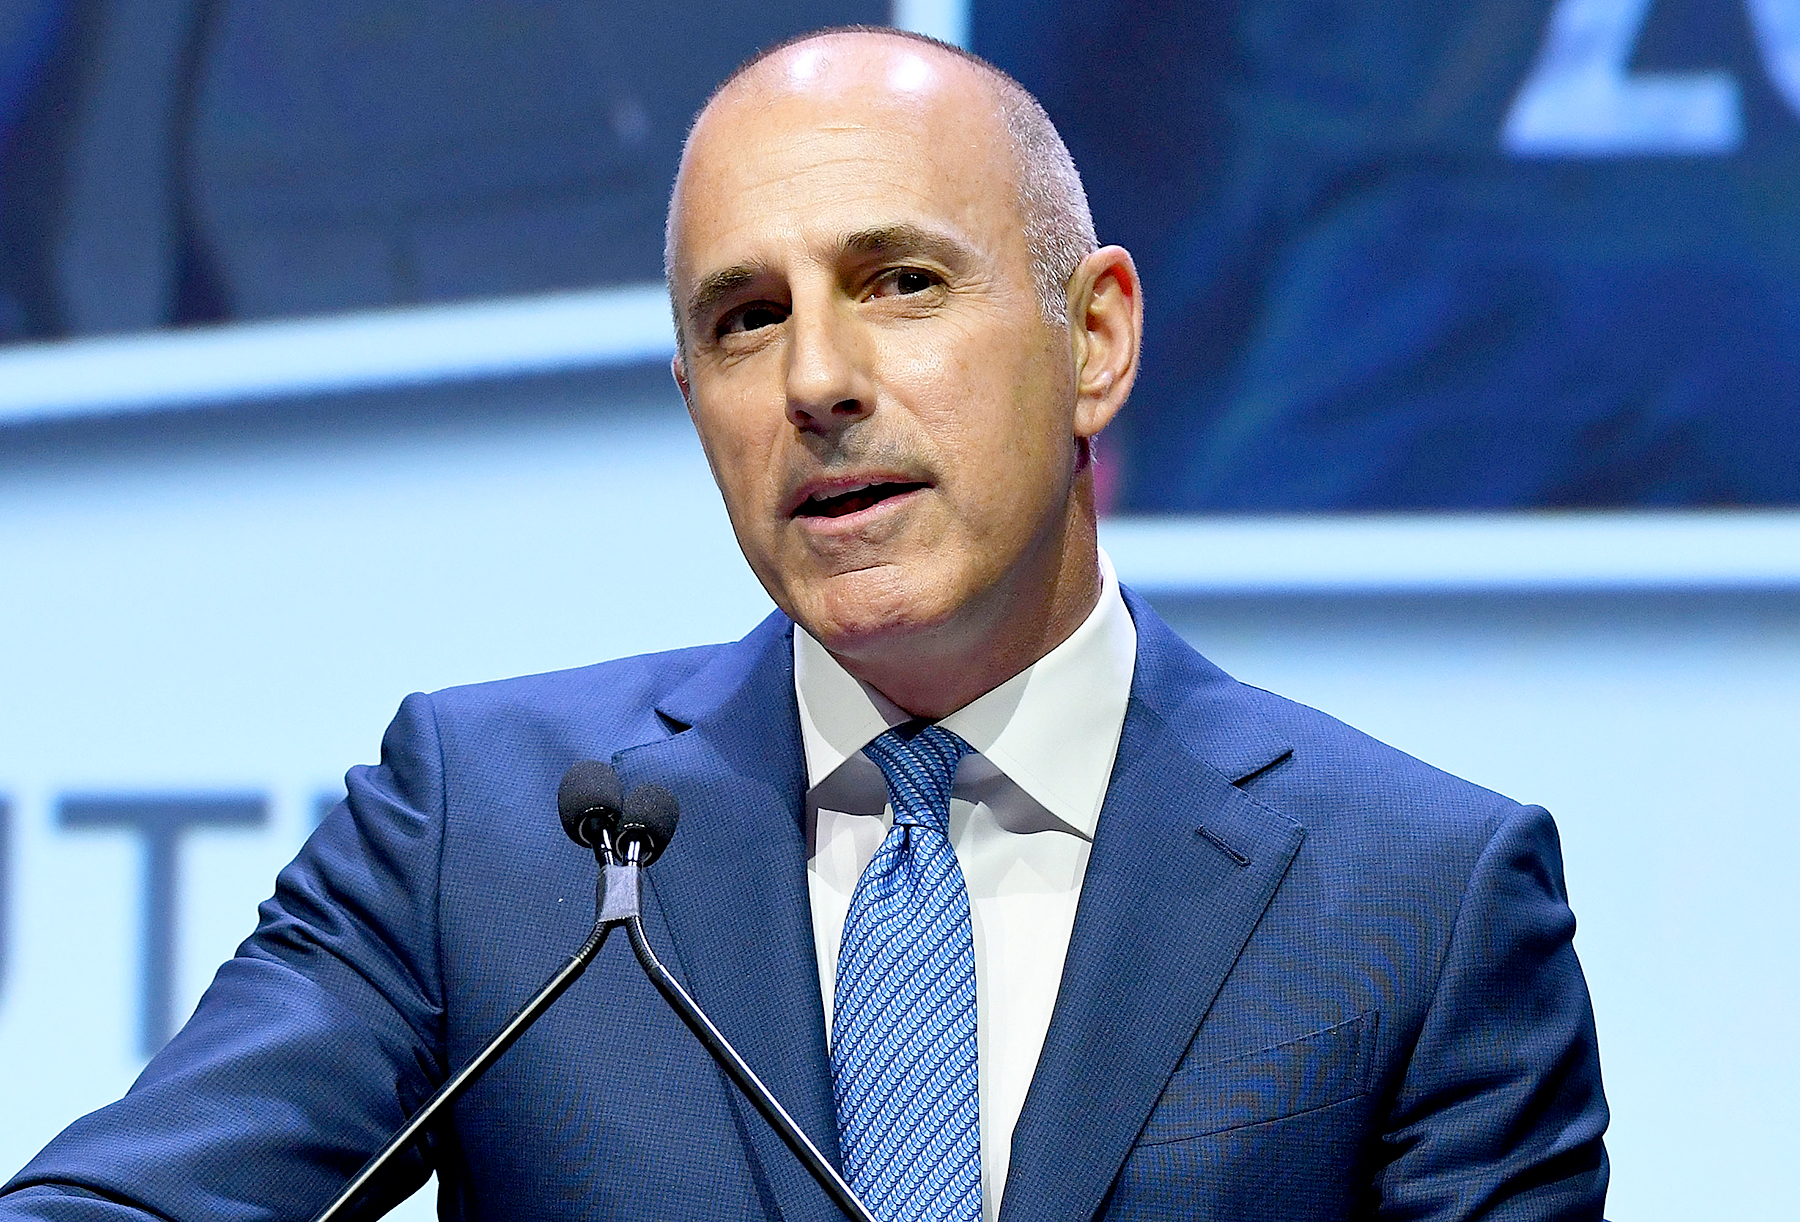 Matt Lauer's Accuser Is 'Terrified' She'll Be Identified, Lawyer Says